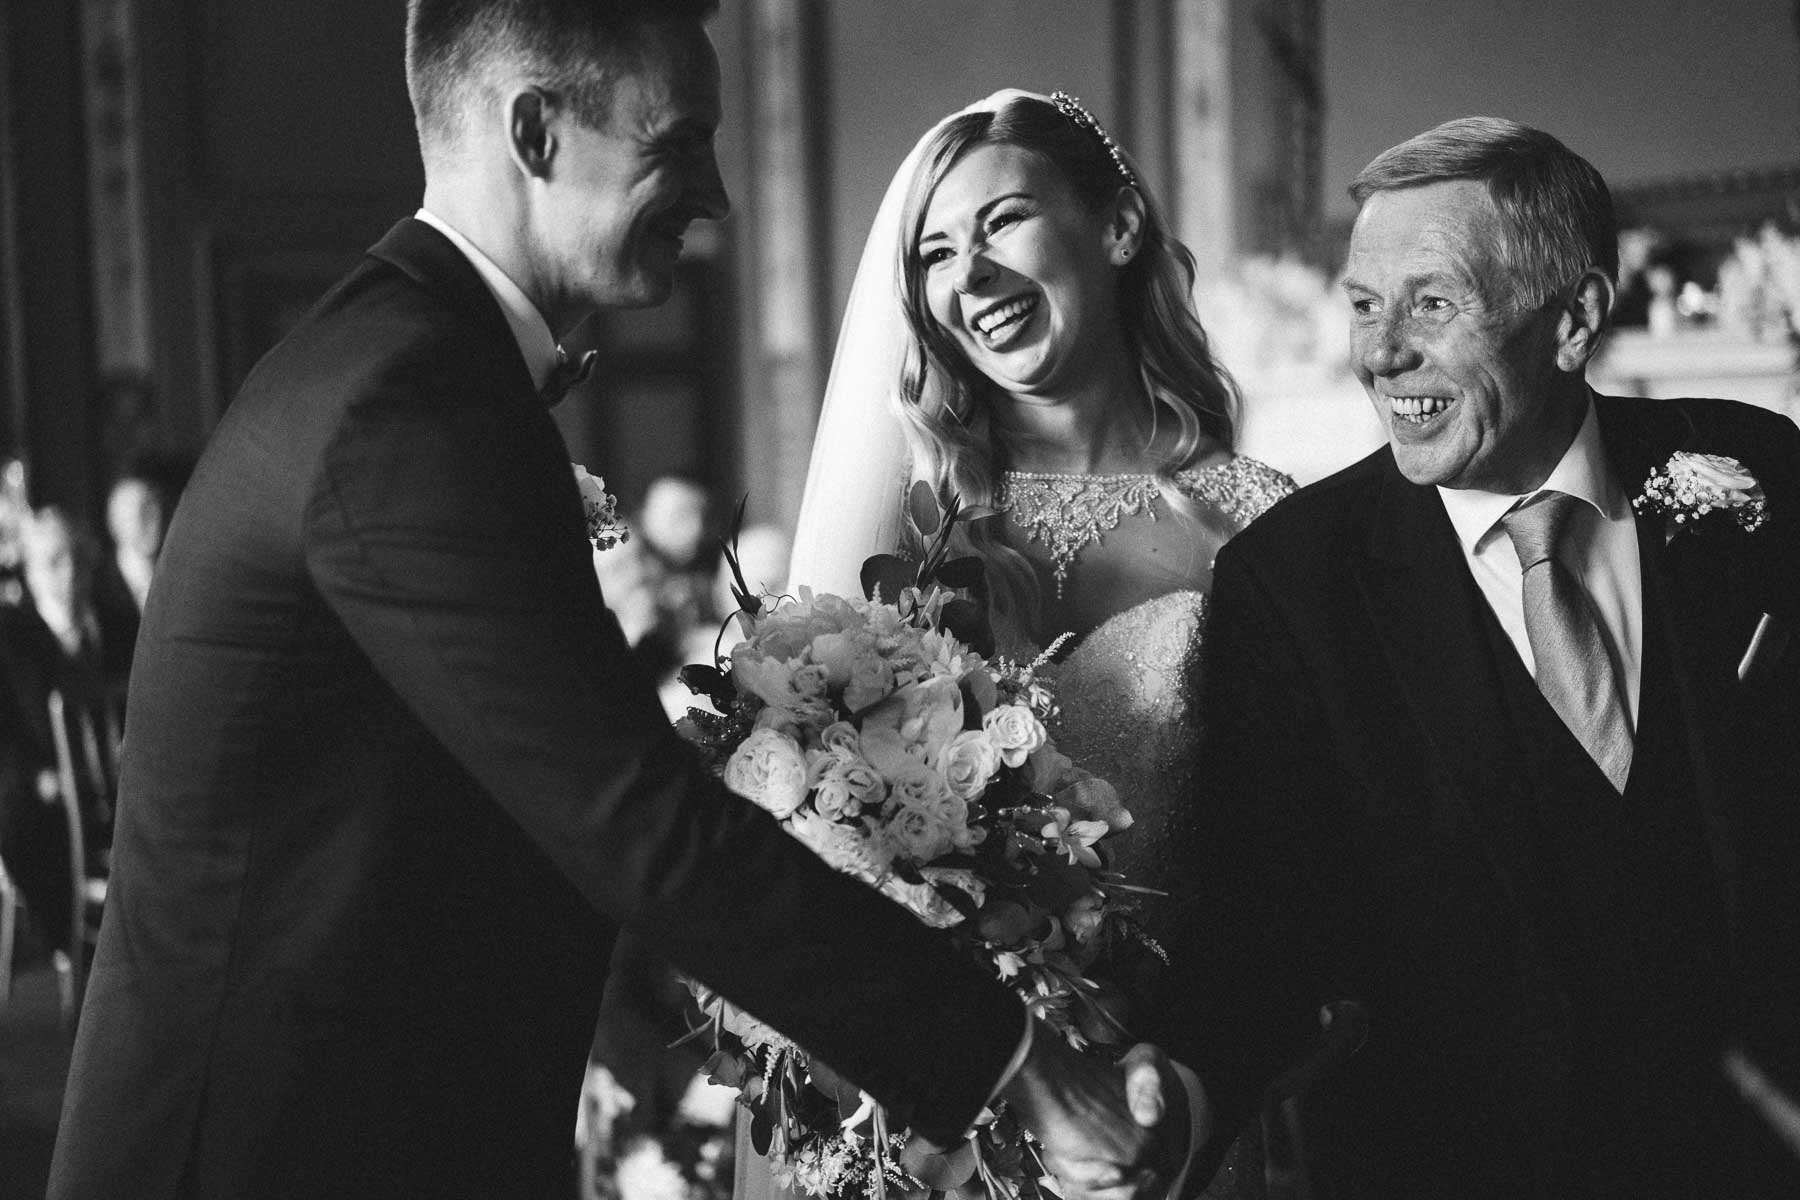 Father of the bride beaming with pride as he says goodbye to her